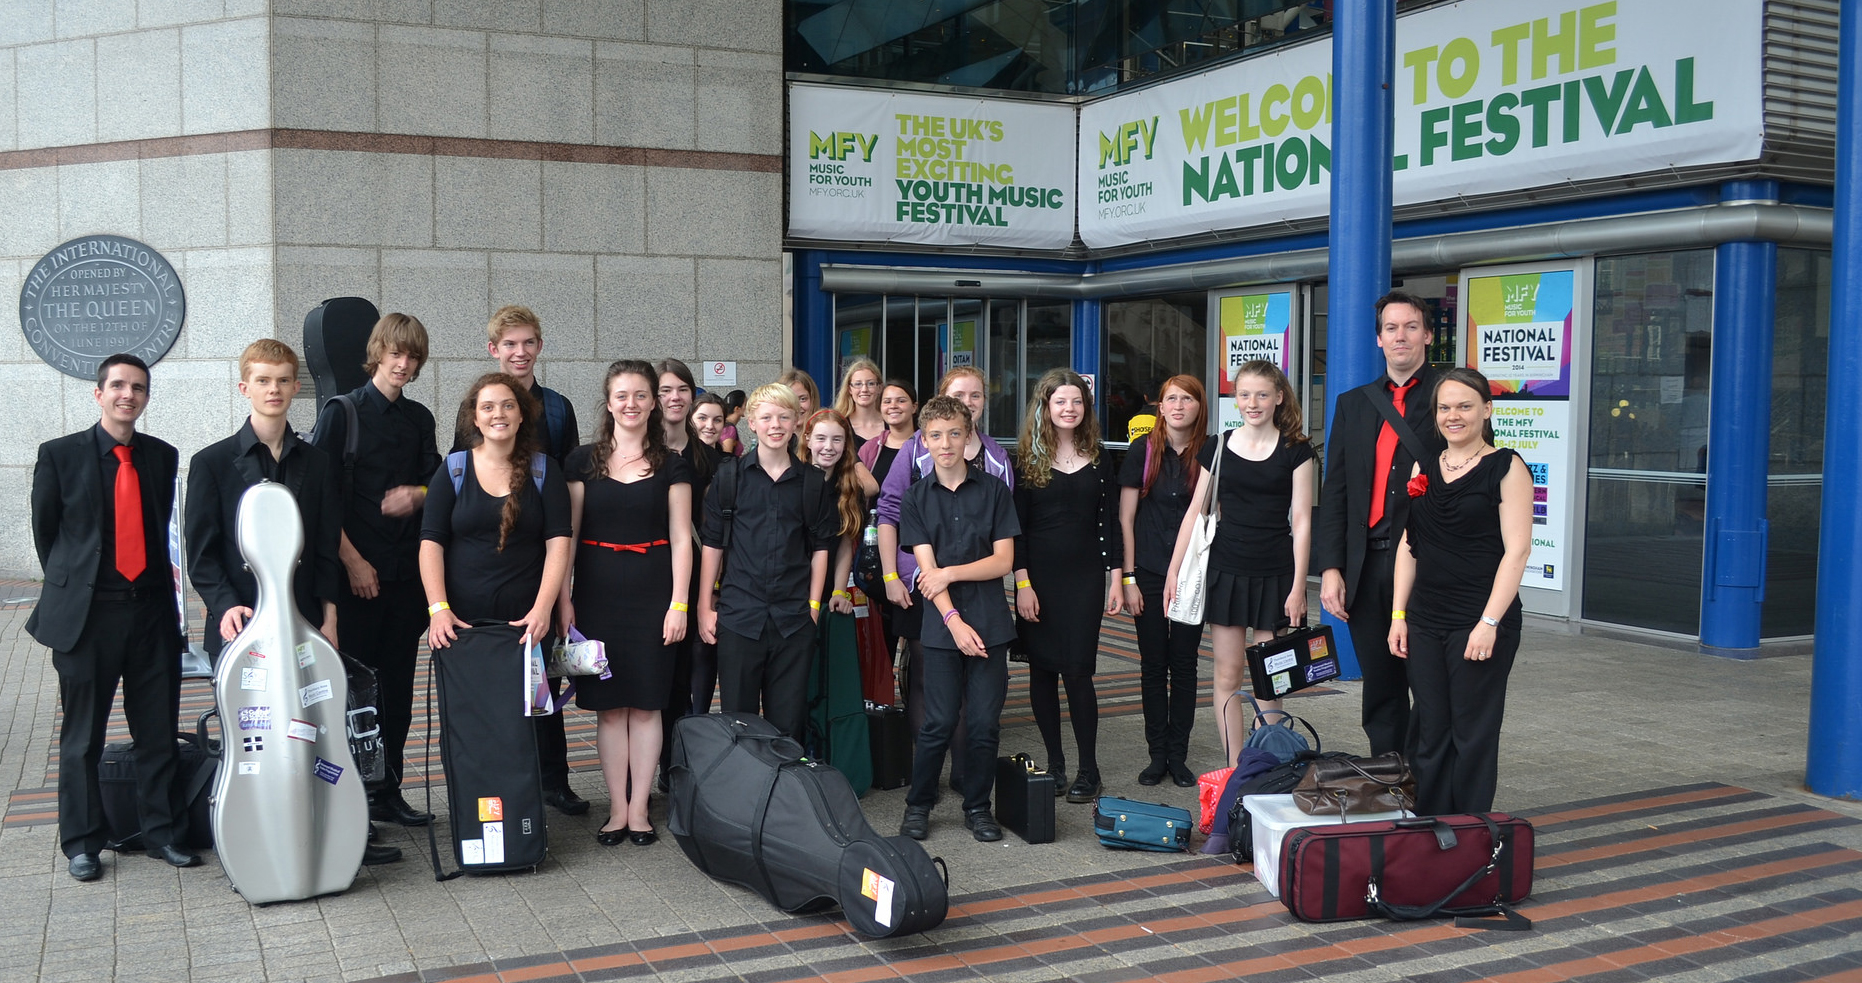 south gloucestershire's youth orchestra - the south cotswold Youth Orchestra